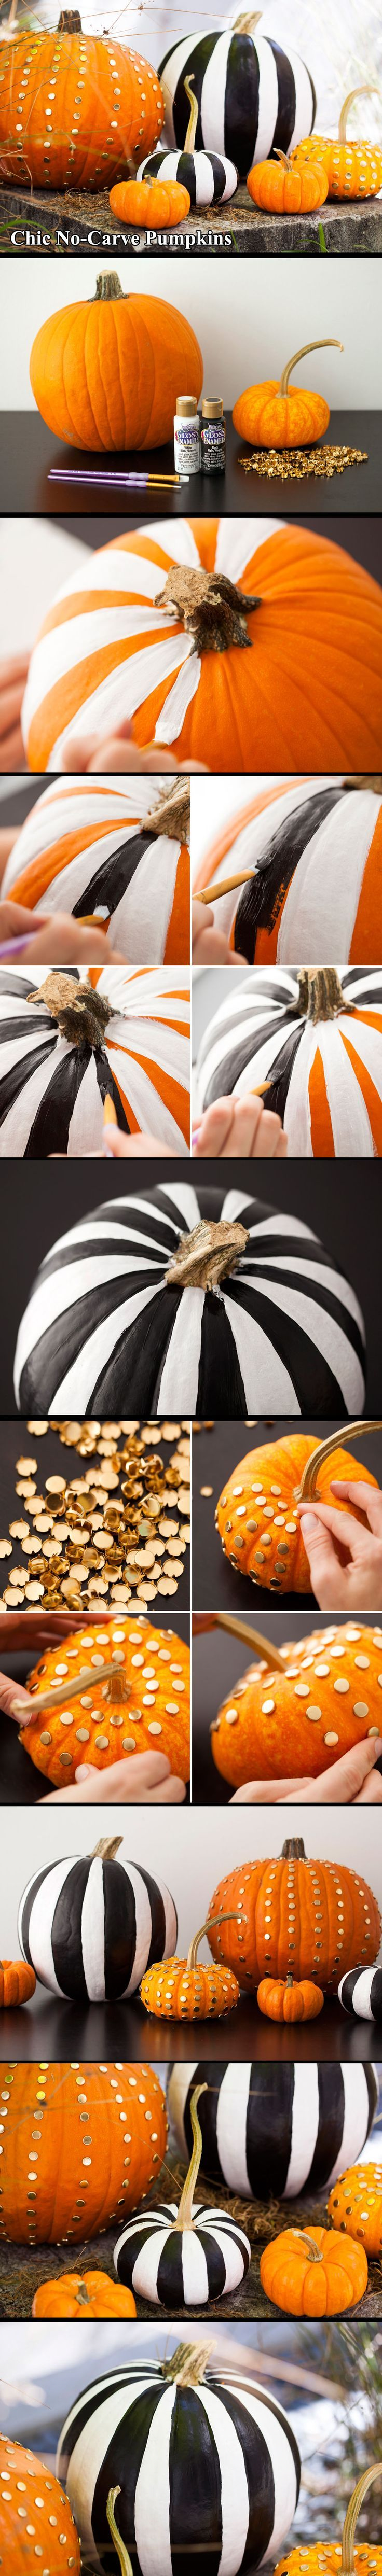 2 ways to make chic no carve pumpkins - Decorated Halloween Pumpkins